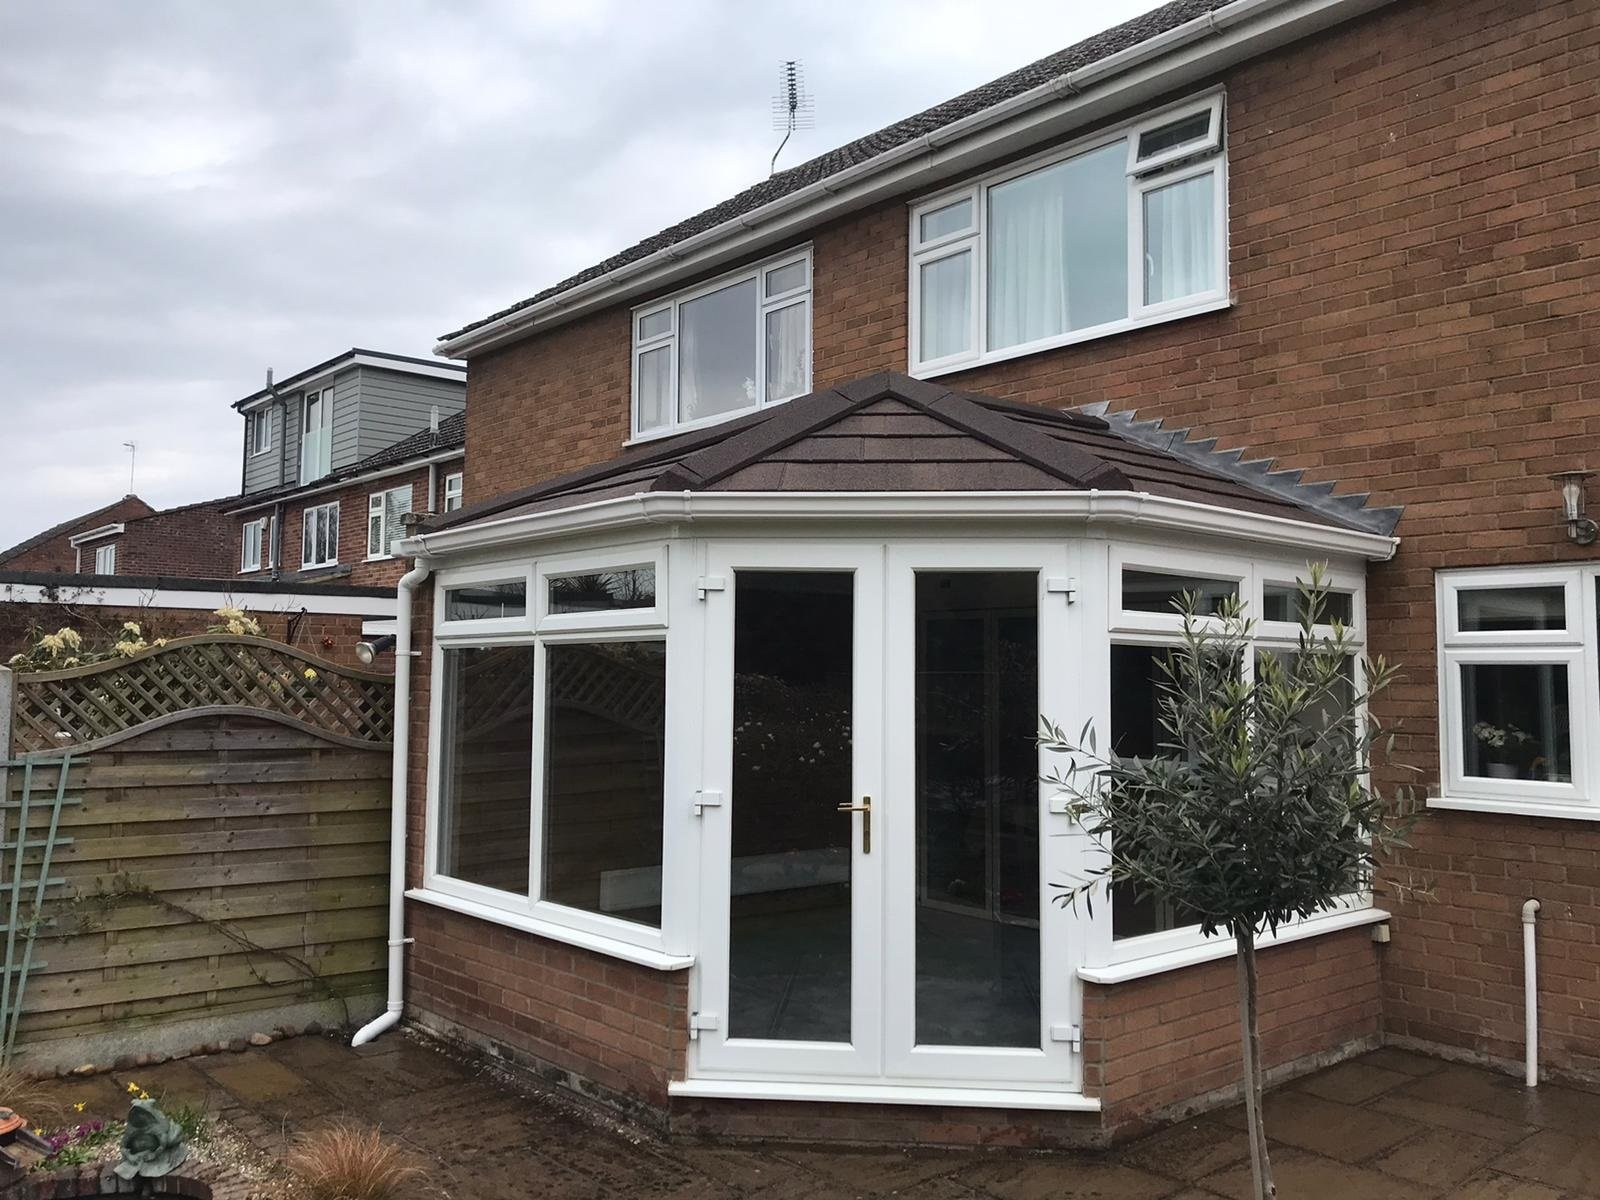 Conservatory in Cambridge after a Tiled Conservatory Roof Transformation